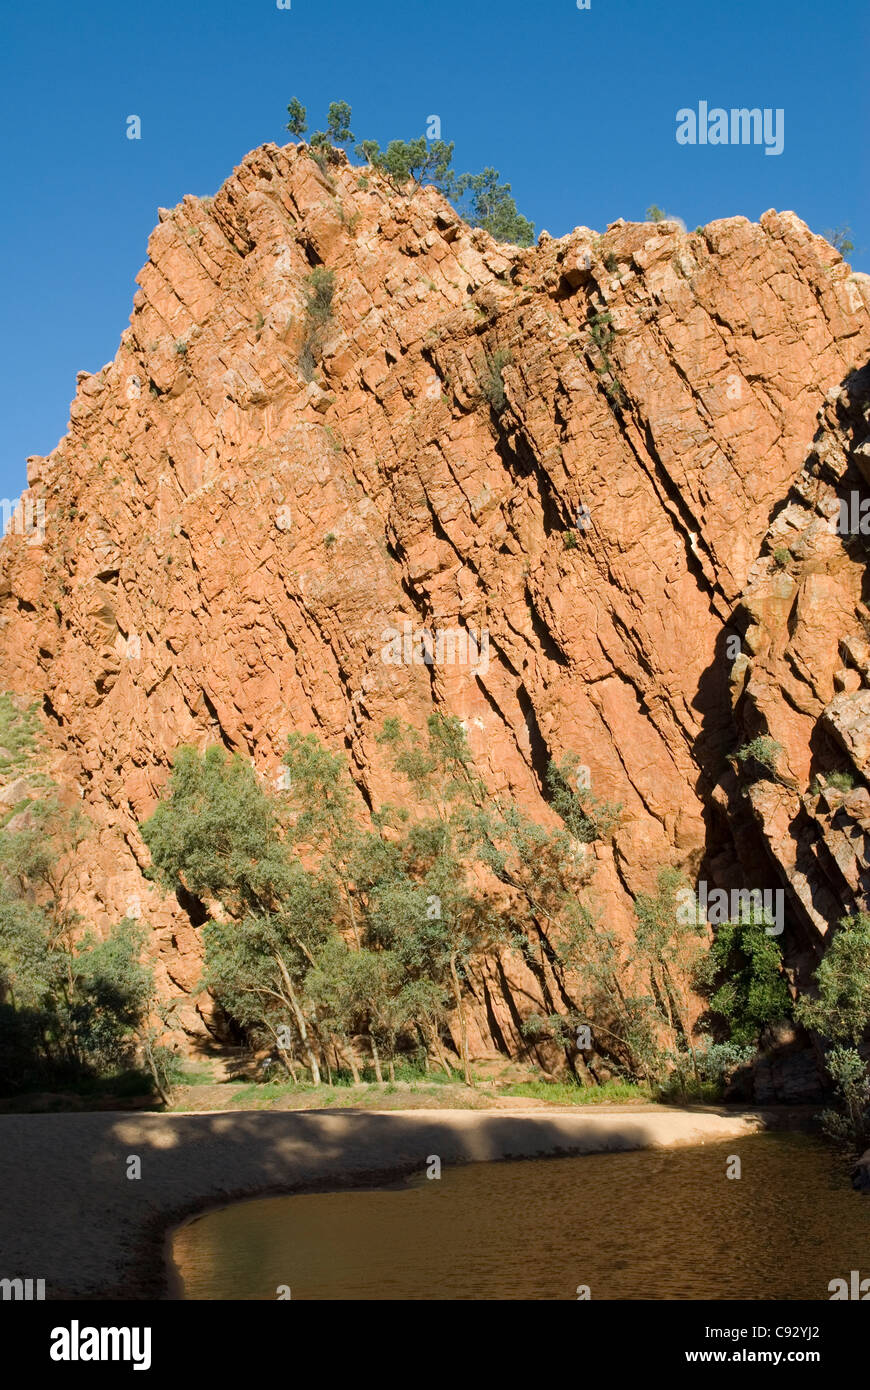 Emily Gap is a break in the Heavitree Range in the East MacDonnell Ranges which are important spiritual sites to - Stock Image